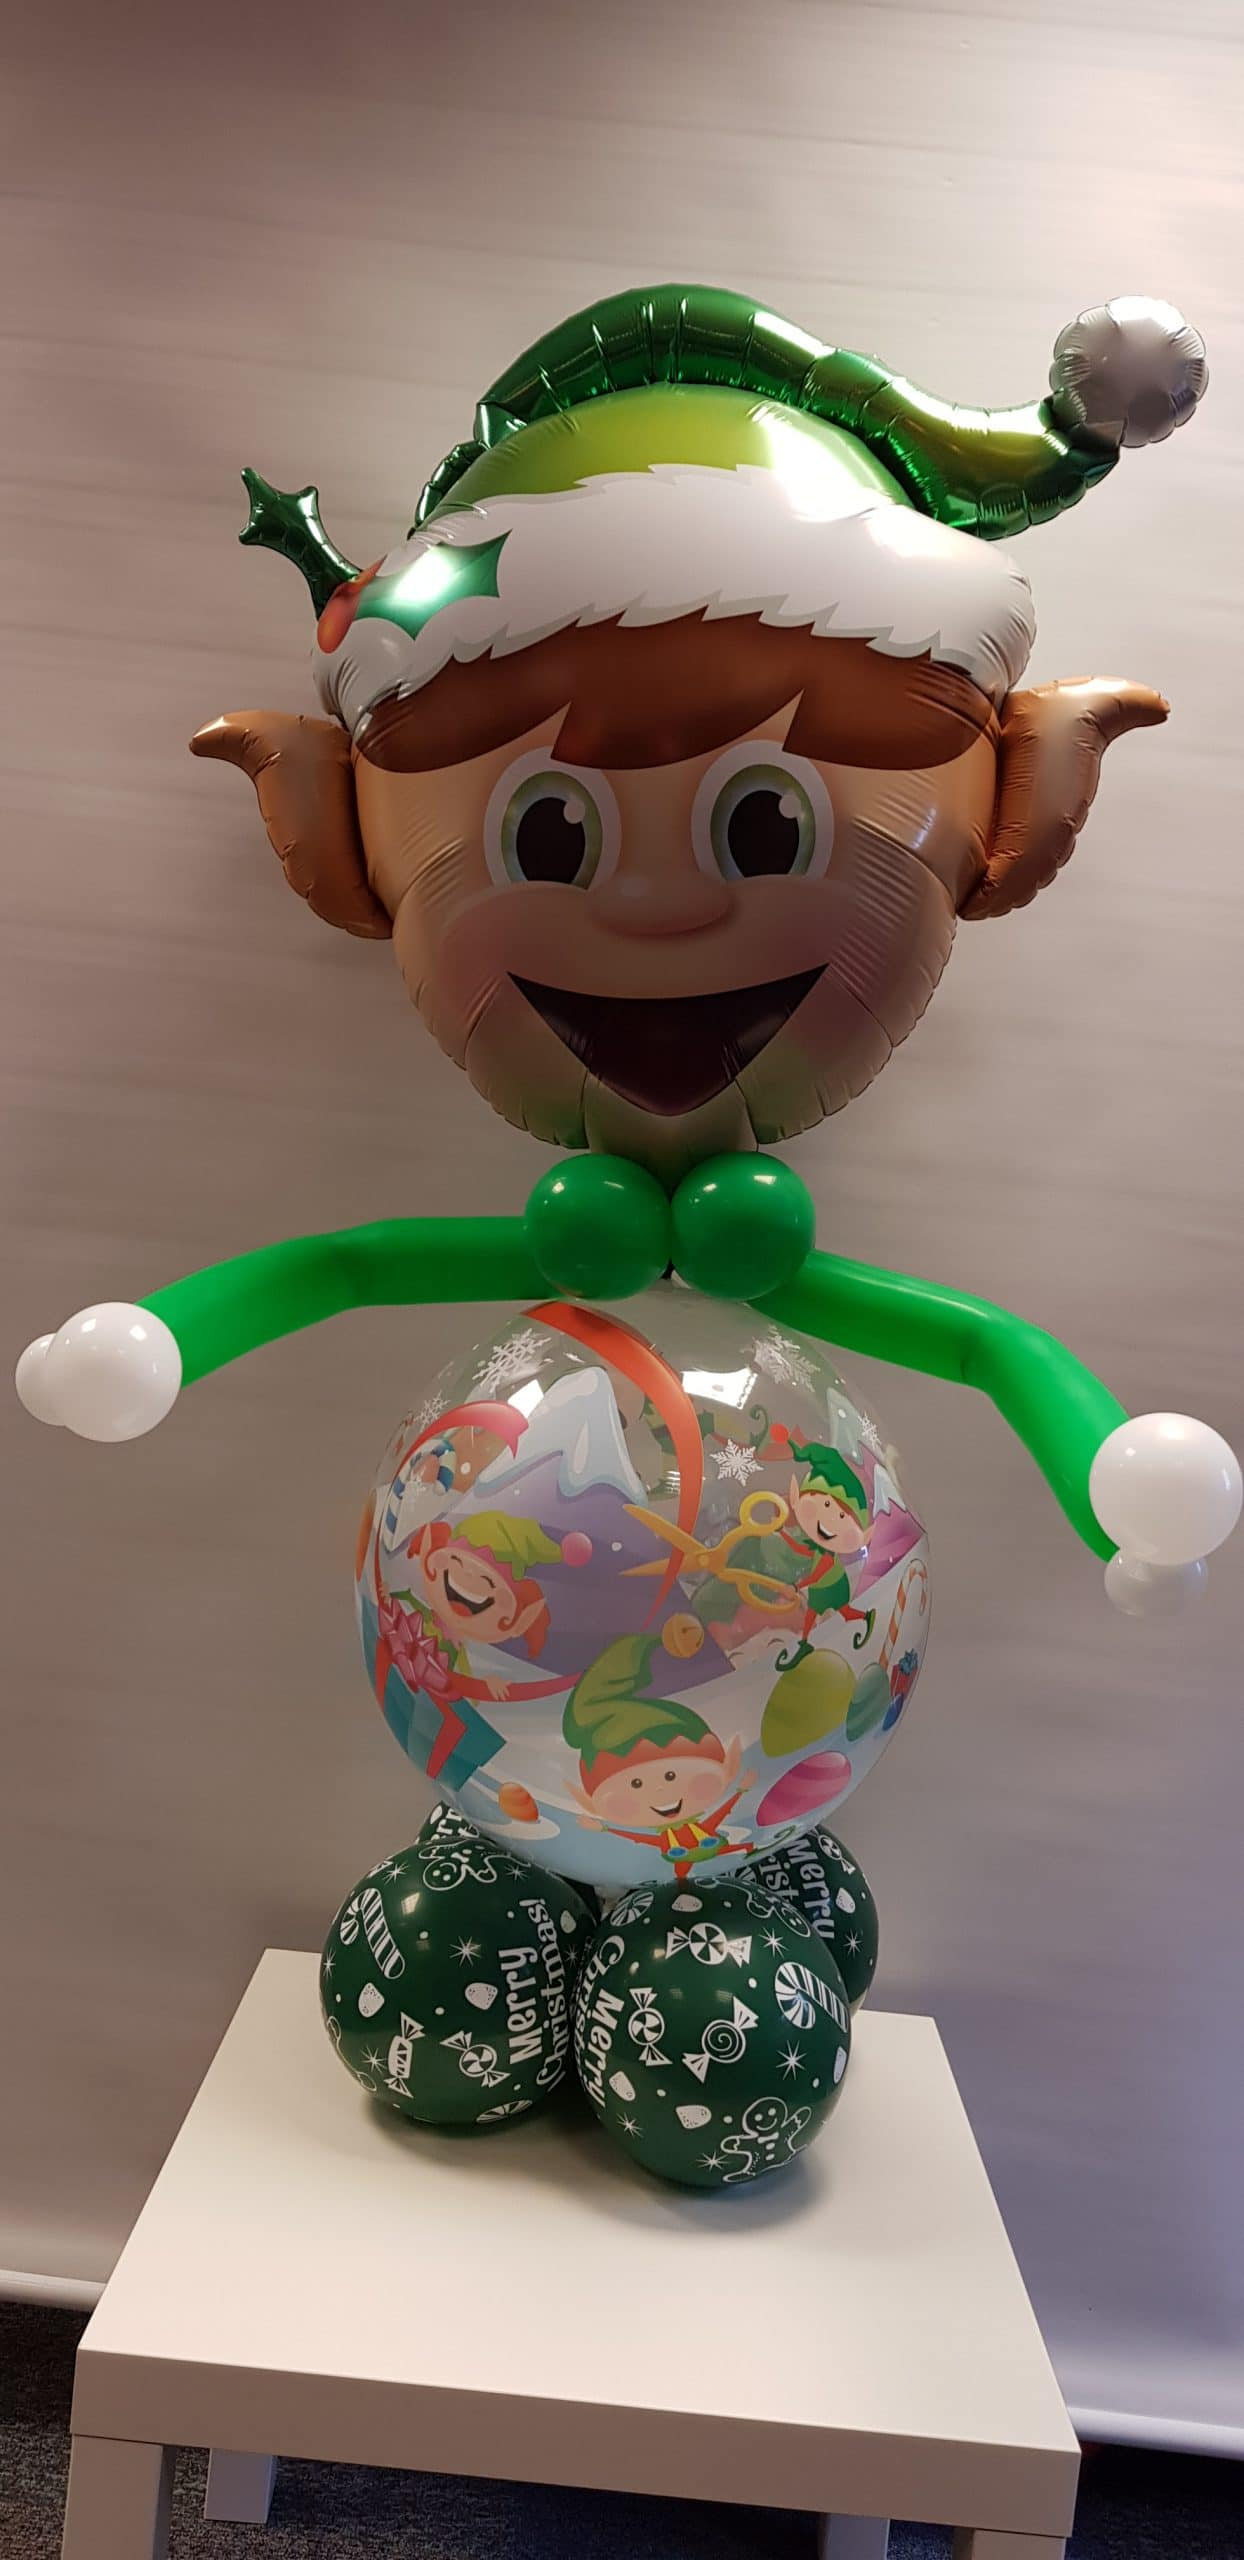 Elf balloon character available from Cardiff Balloons